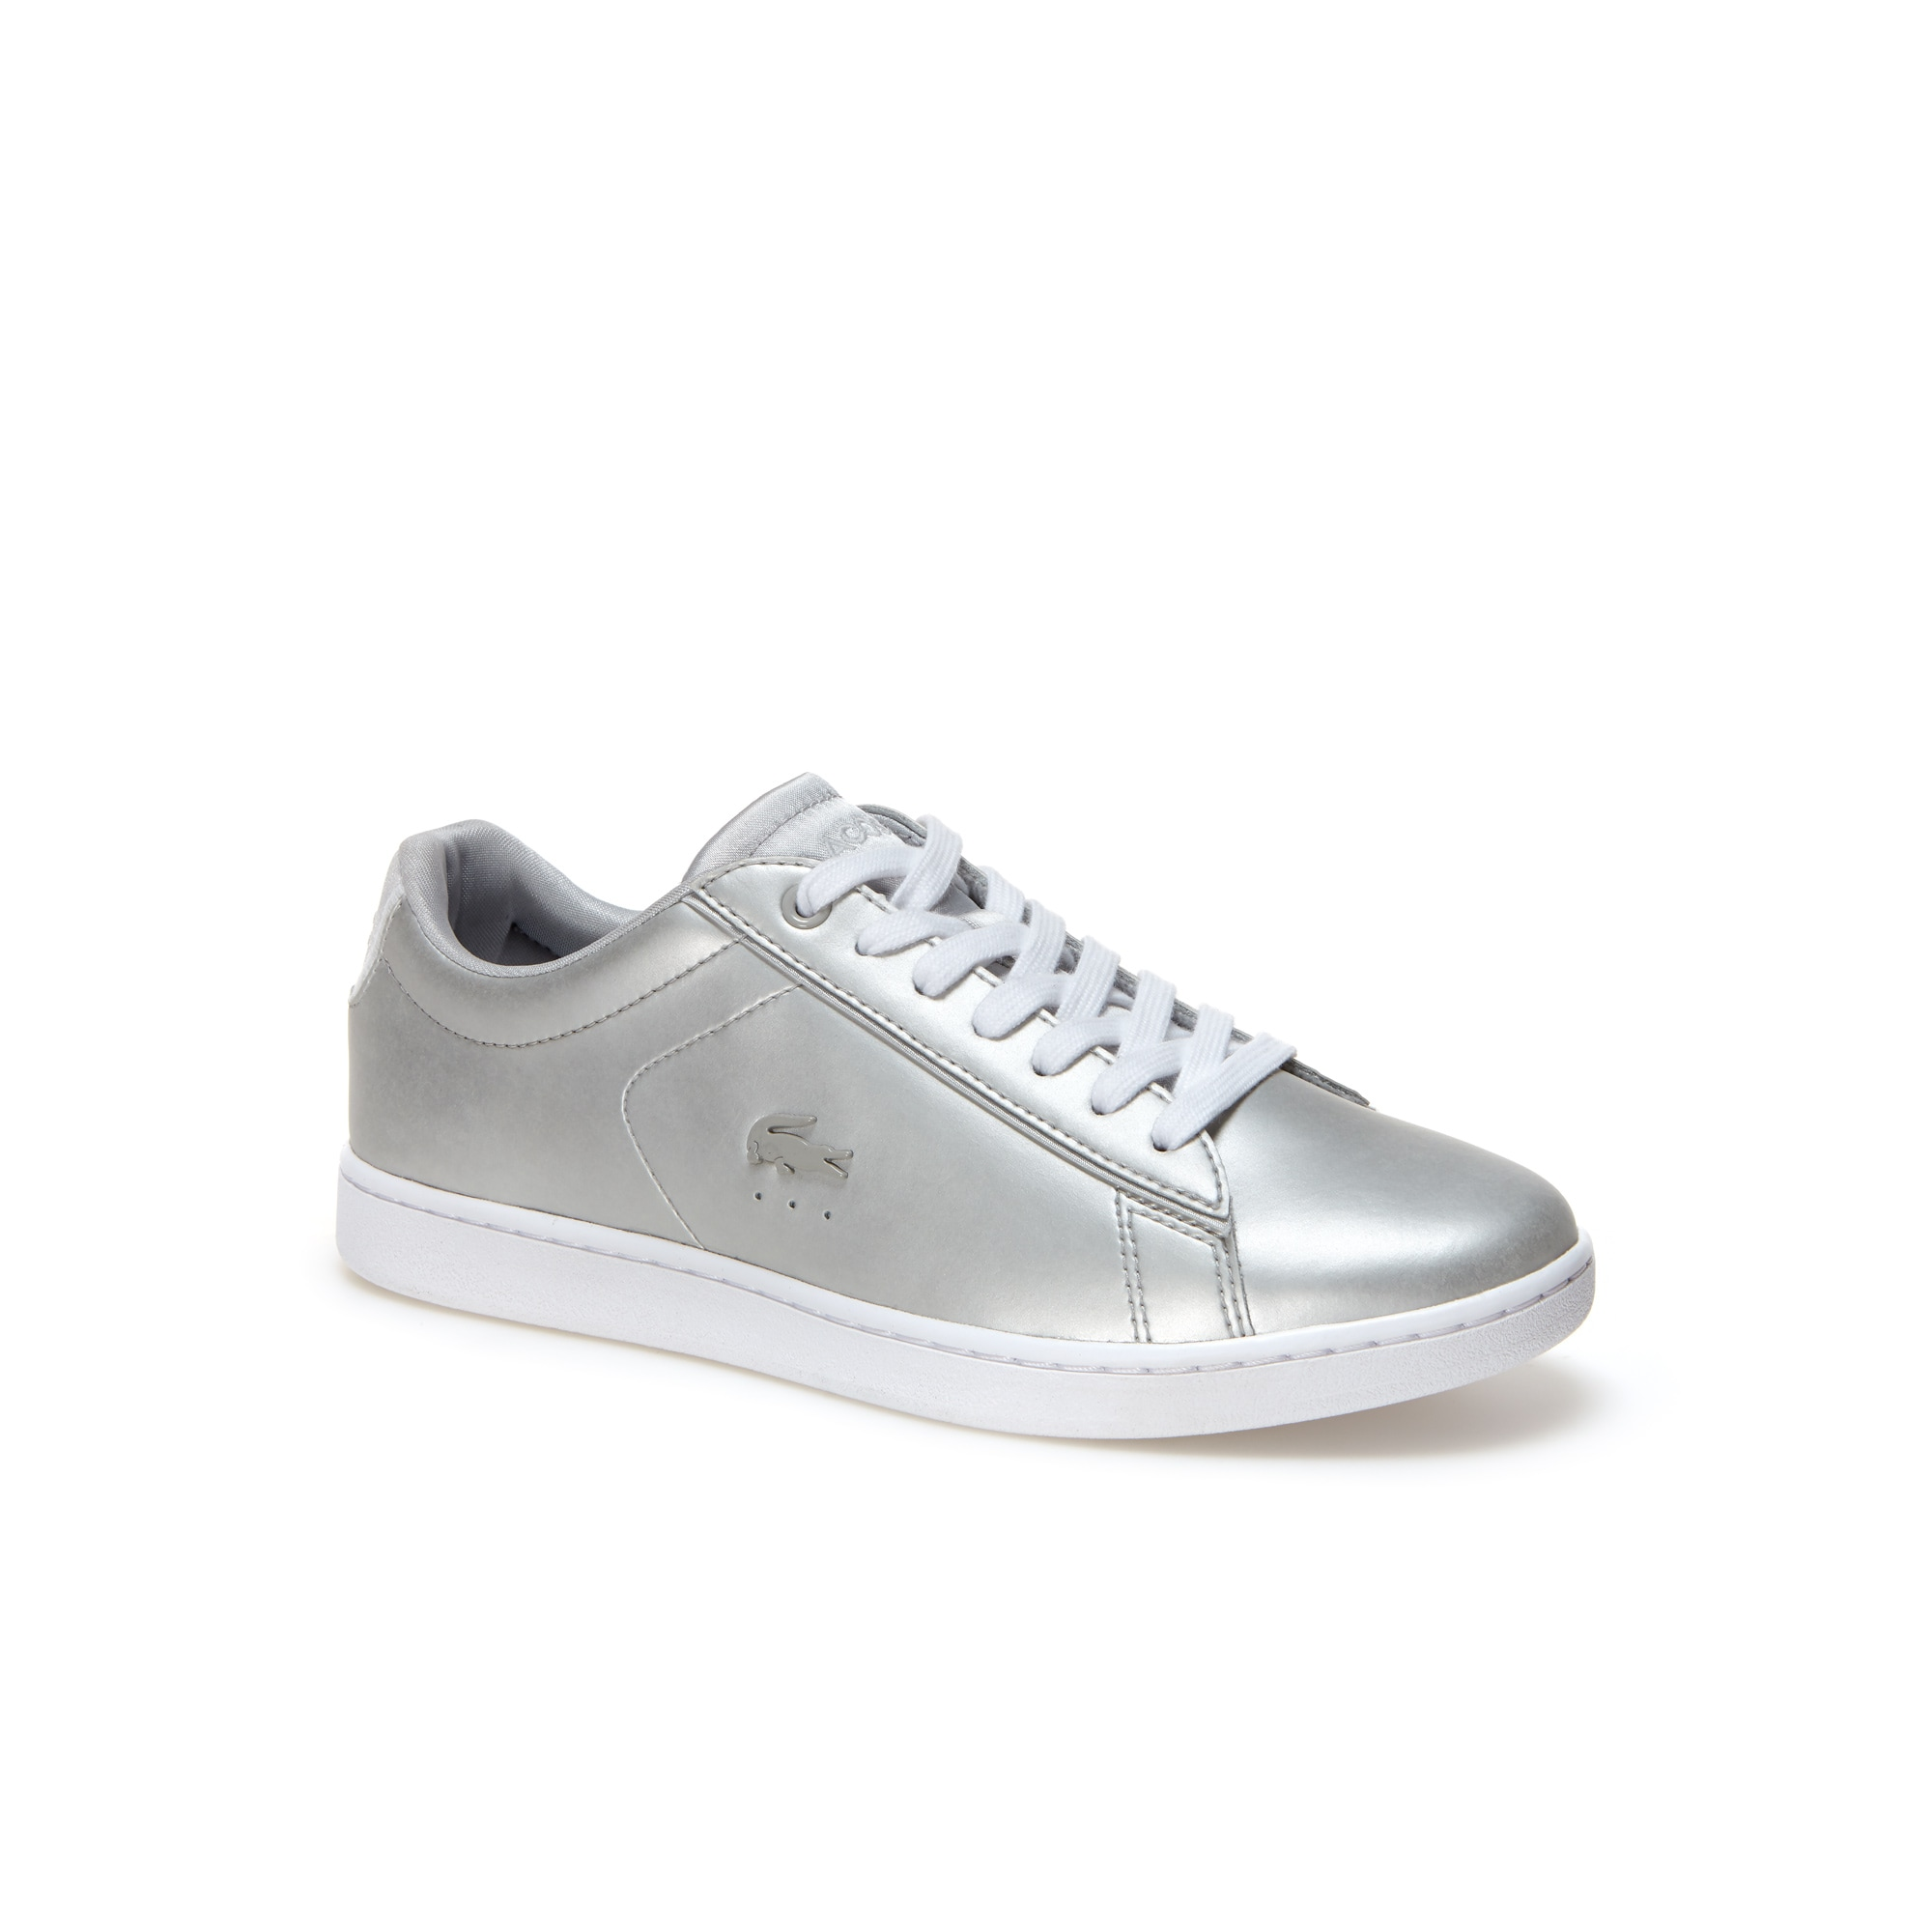 Women's Carnaby Evo Metallic-finish Leather Trainers